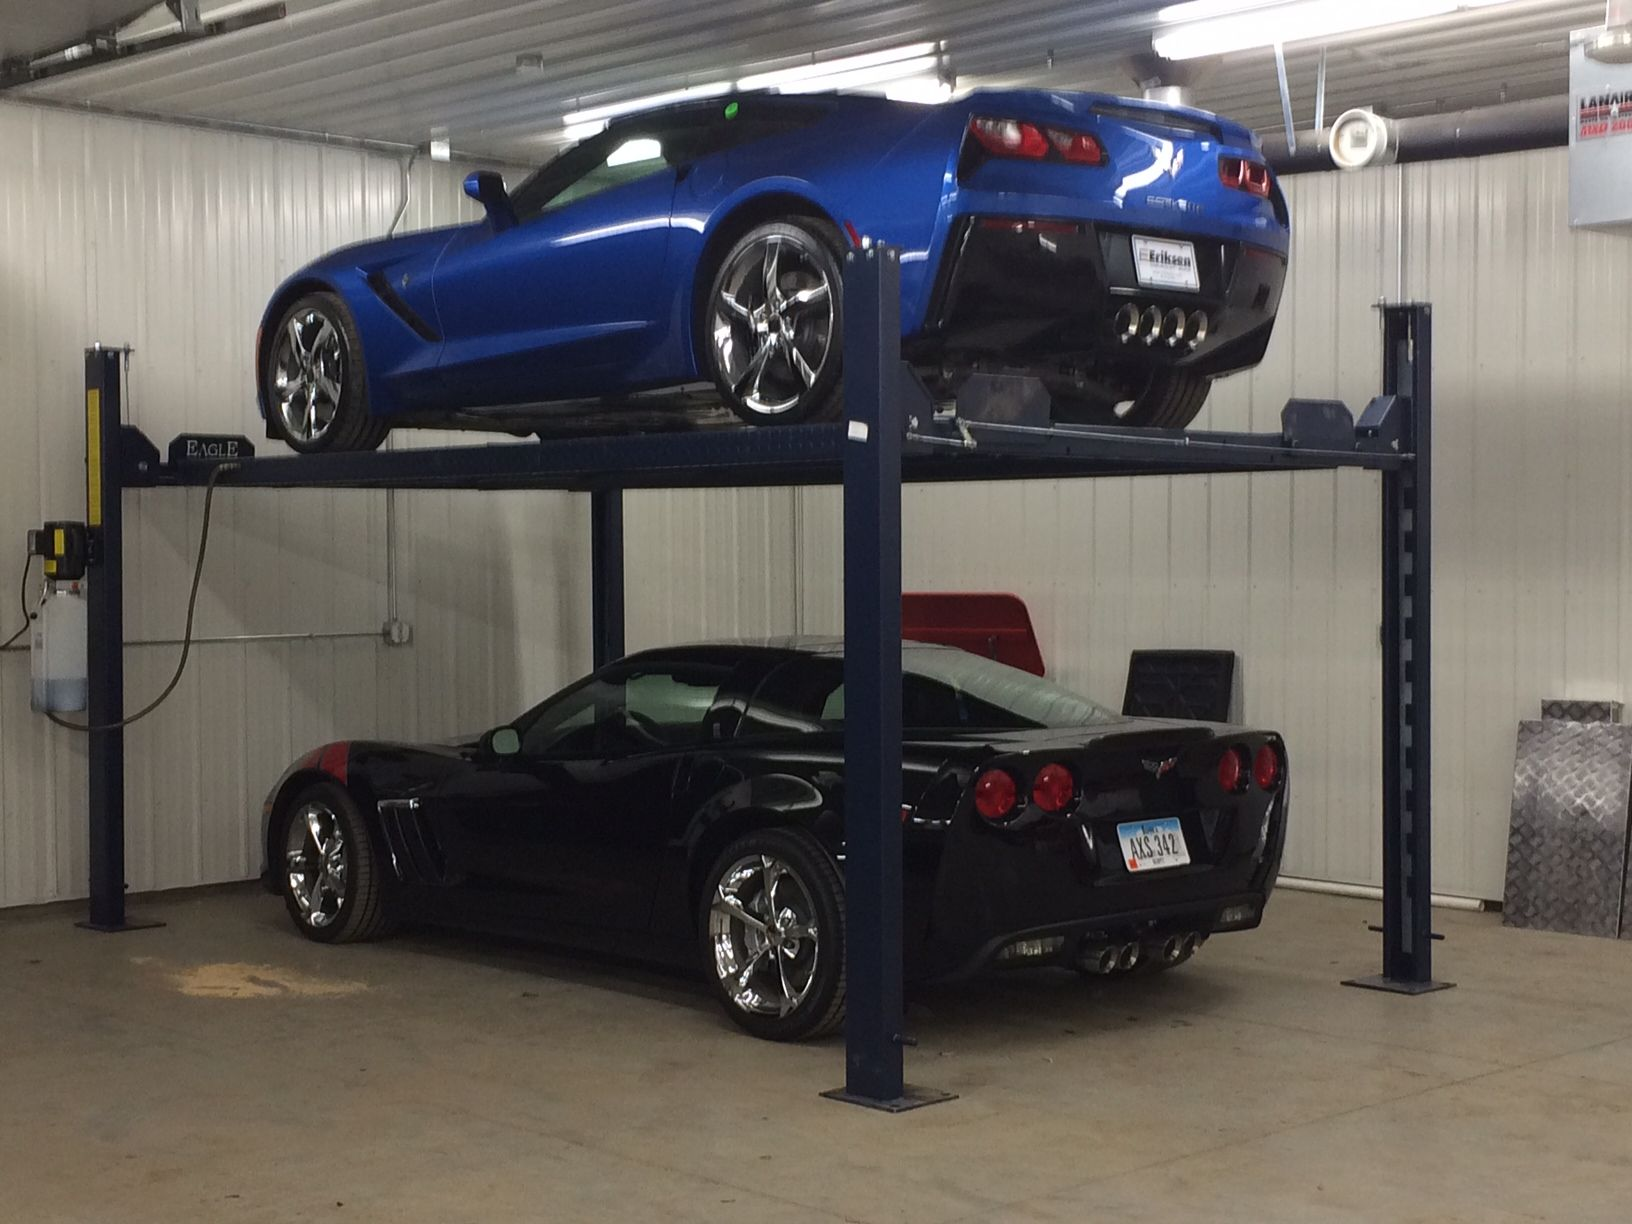 We Find Better Custom Garage Parking Storage Solutions Even With Limited E Available